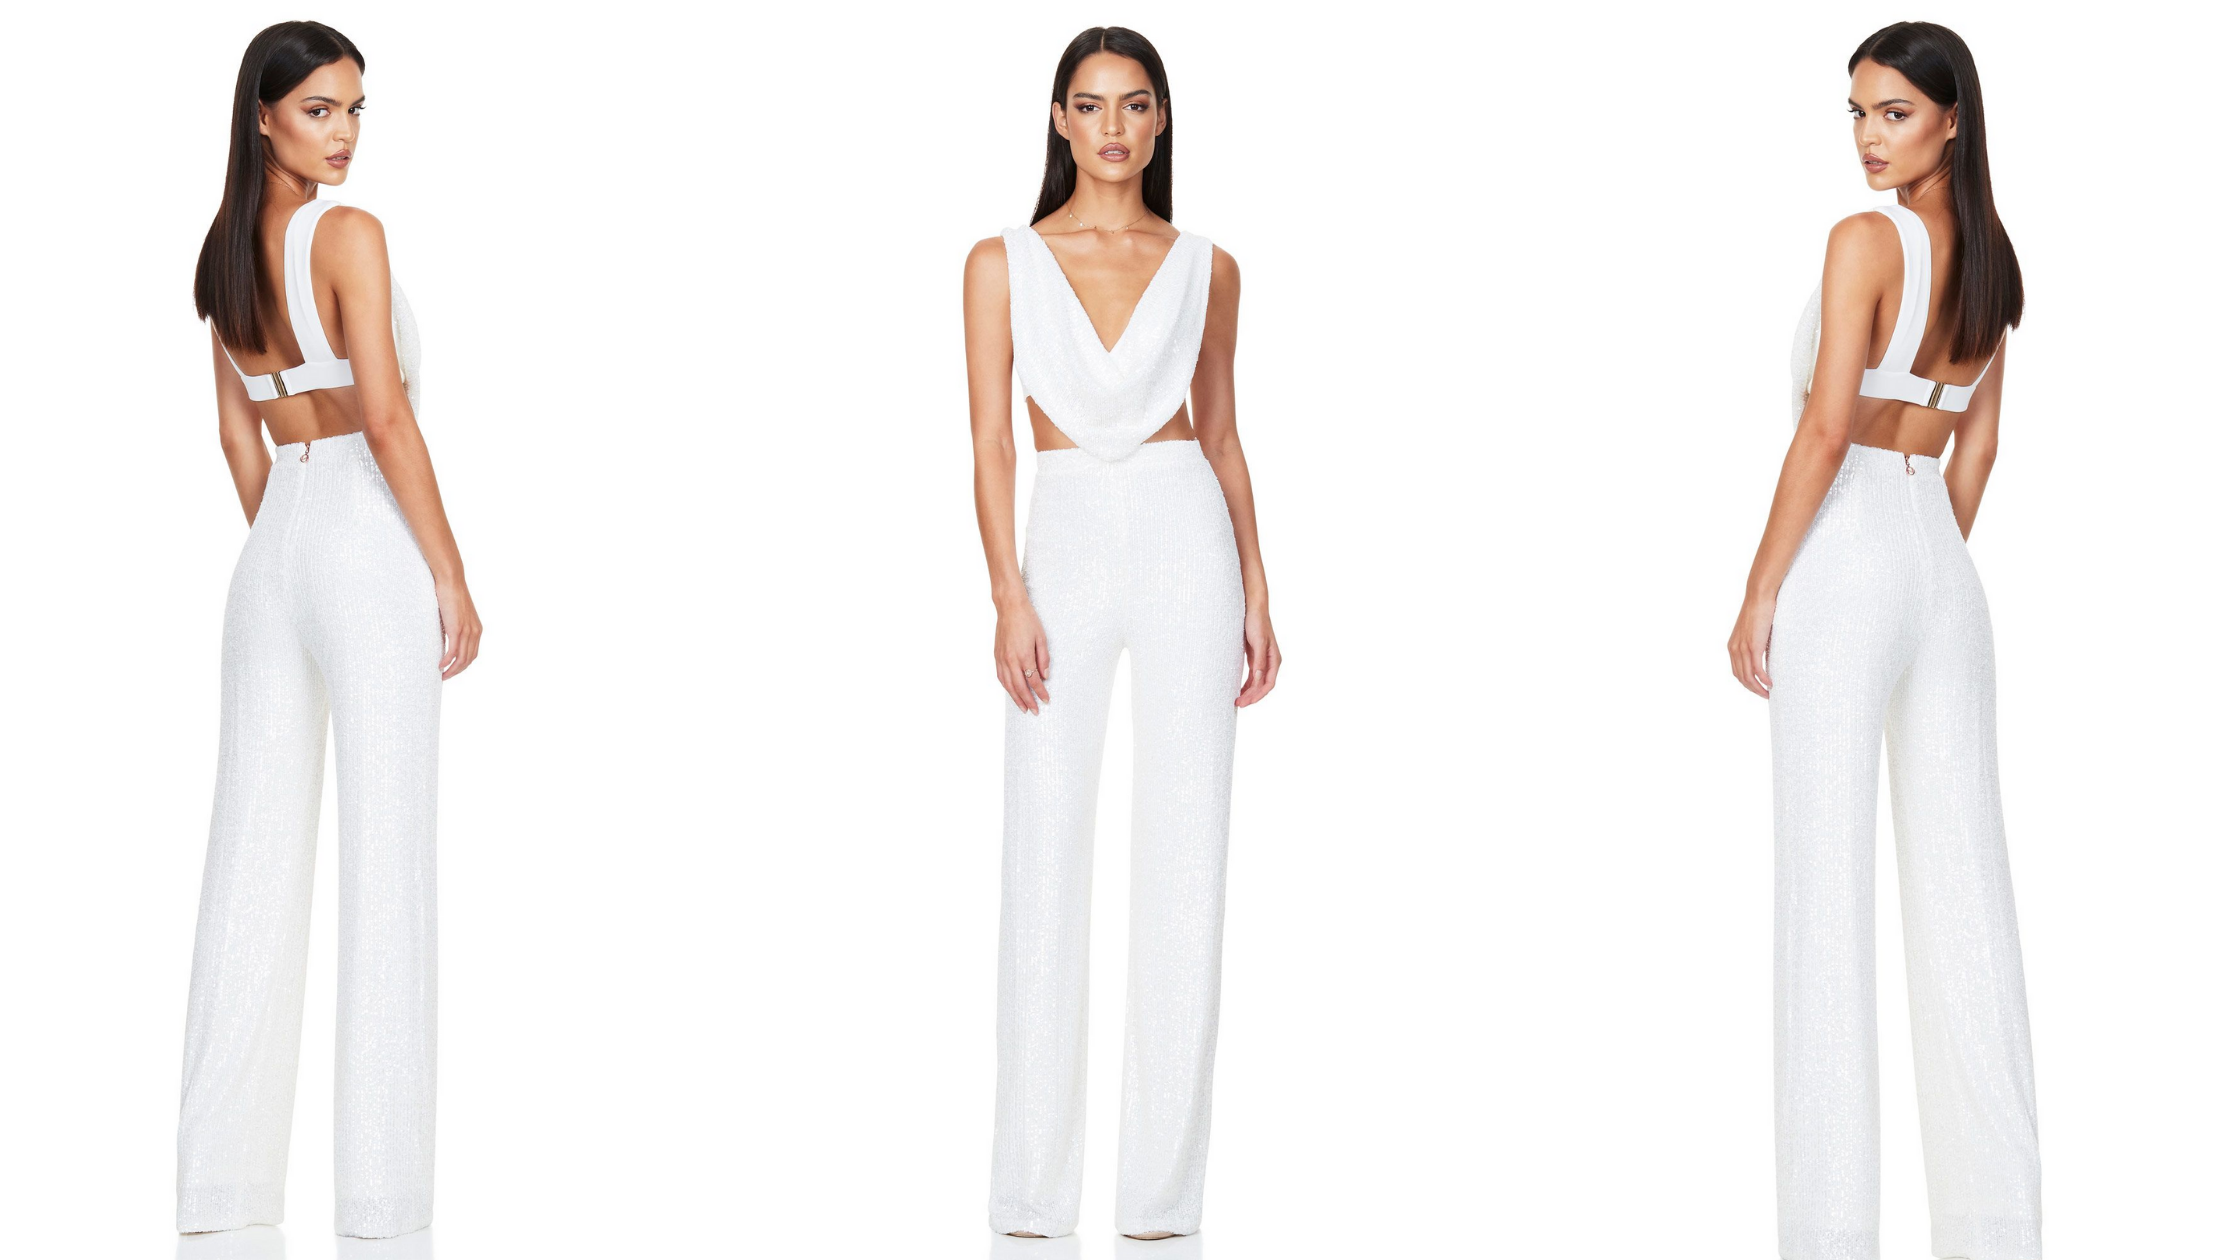 https://zetoni.com.au/collections/must-have-sparkly-and-sexy-outfits/products/pandora-pant